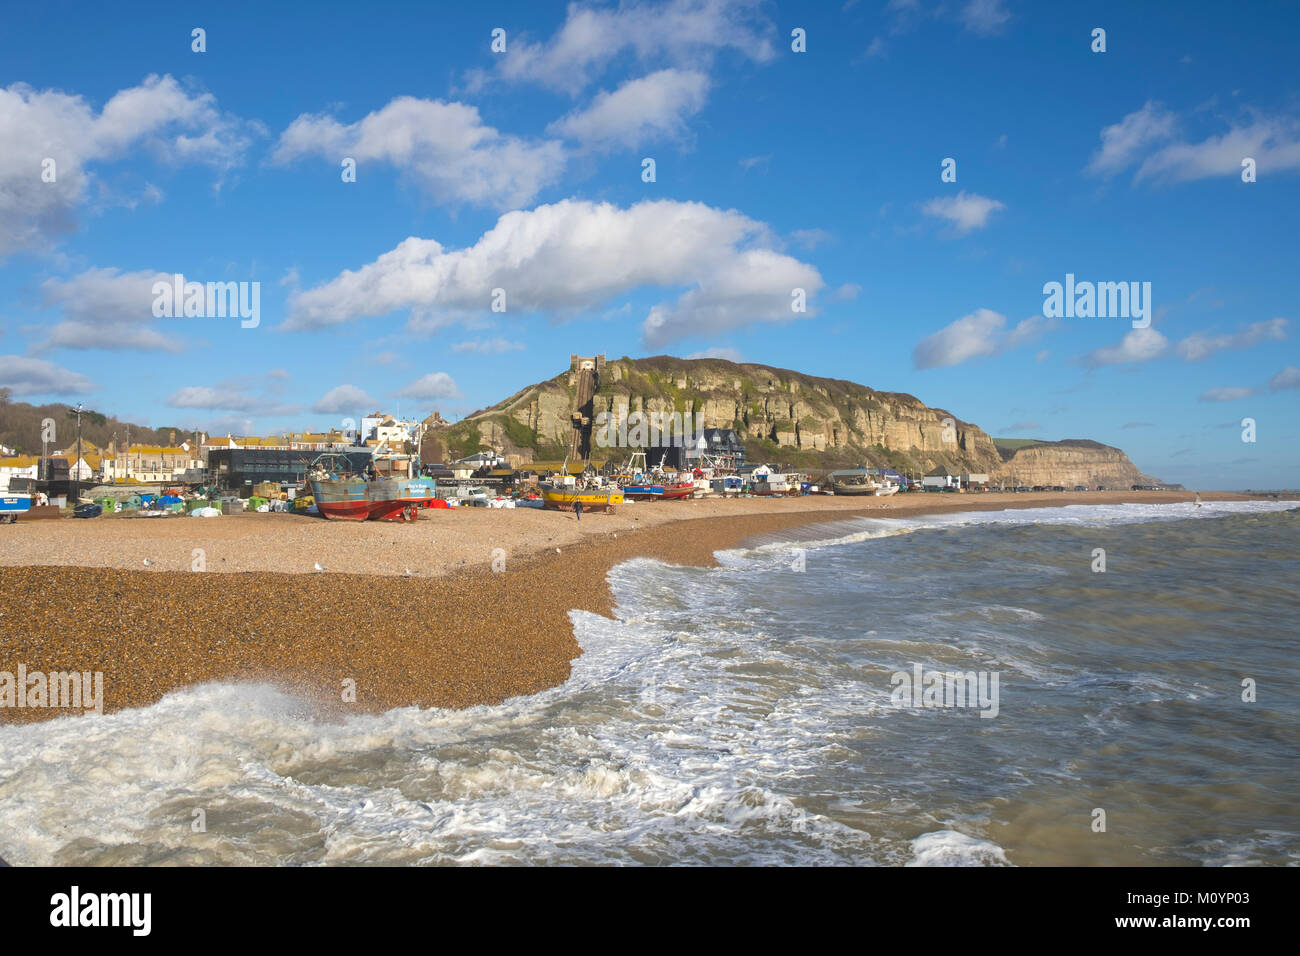 Hastings Fishing Boats on the Old Town Stade Fishermen's Beach, Rock-a-Nore, East Sussex, UK - Stock Image